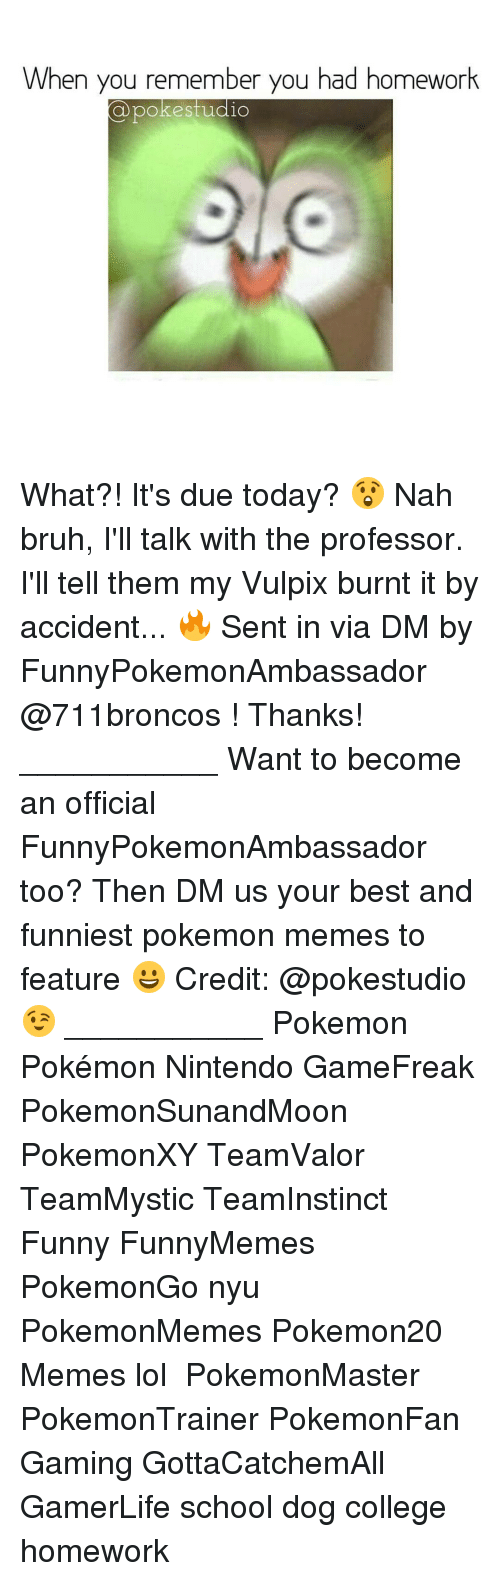 Nah Bruh: When you remember you had homework  a poke studio What?! It's due today? 😲 Nah bruh, I'll talk with the professor. I'll tell them my Vulpix burnt it by accident... 🔥 Sent in via DM by FunnyPokemonAmbassador @711broncos ! Thanks! ___________ Want to become an official FunnyPokemonAmbassador too? Then DM us your best and funniest pokemon memes to feature 😀 Credit: @pokestudio 😉 ___________ Pokemon Pokémon Nintendo GameFreak PokemonSunandMoon PokemonXY TeamValor TeamMystic TeamInstinct Funny FunnyMemes PokemonGo nyu PokemonMemes Pokemon20 Memes lol ポケットモンスター PokemonMaster PokemonTrainer PokemonFan Gaming GottaCatchemAll GamerLife school dog college homework